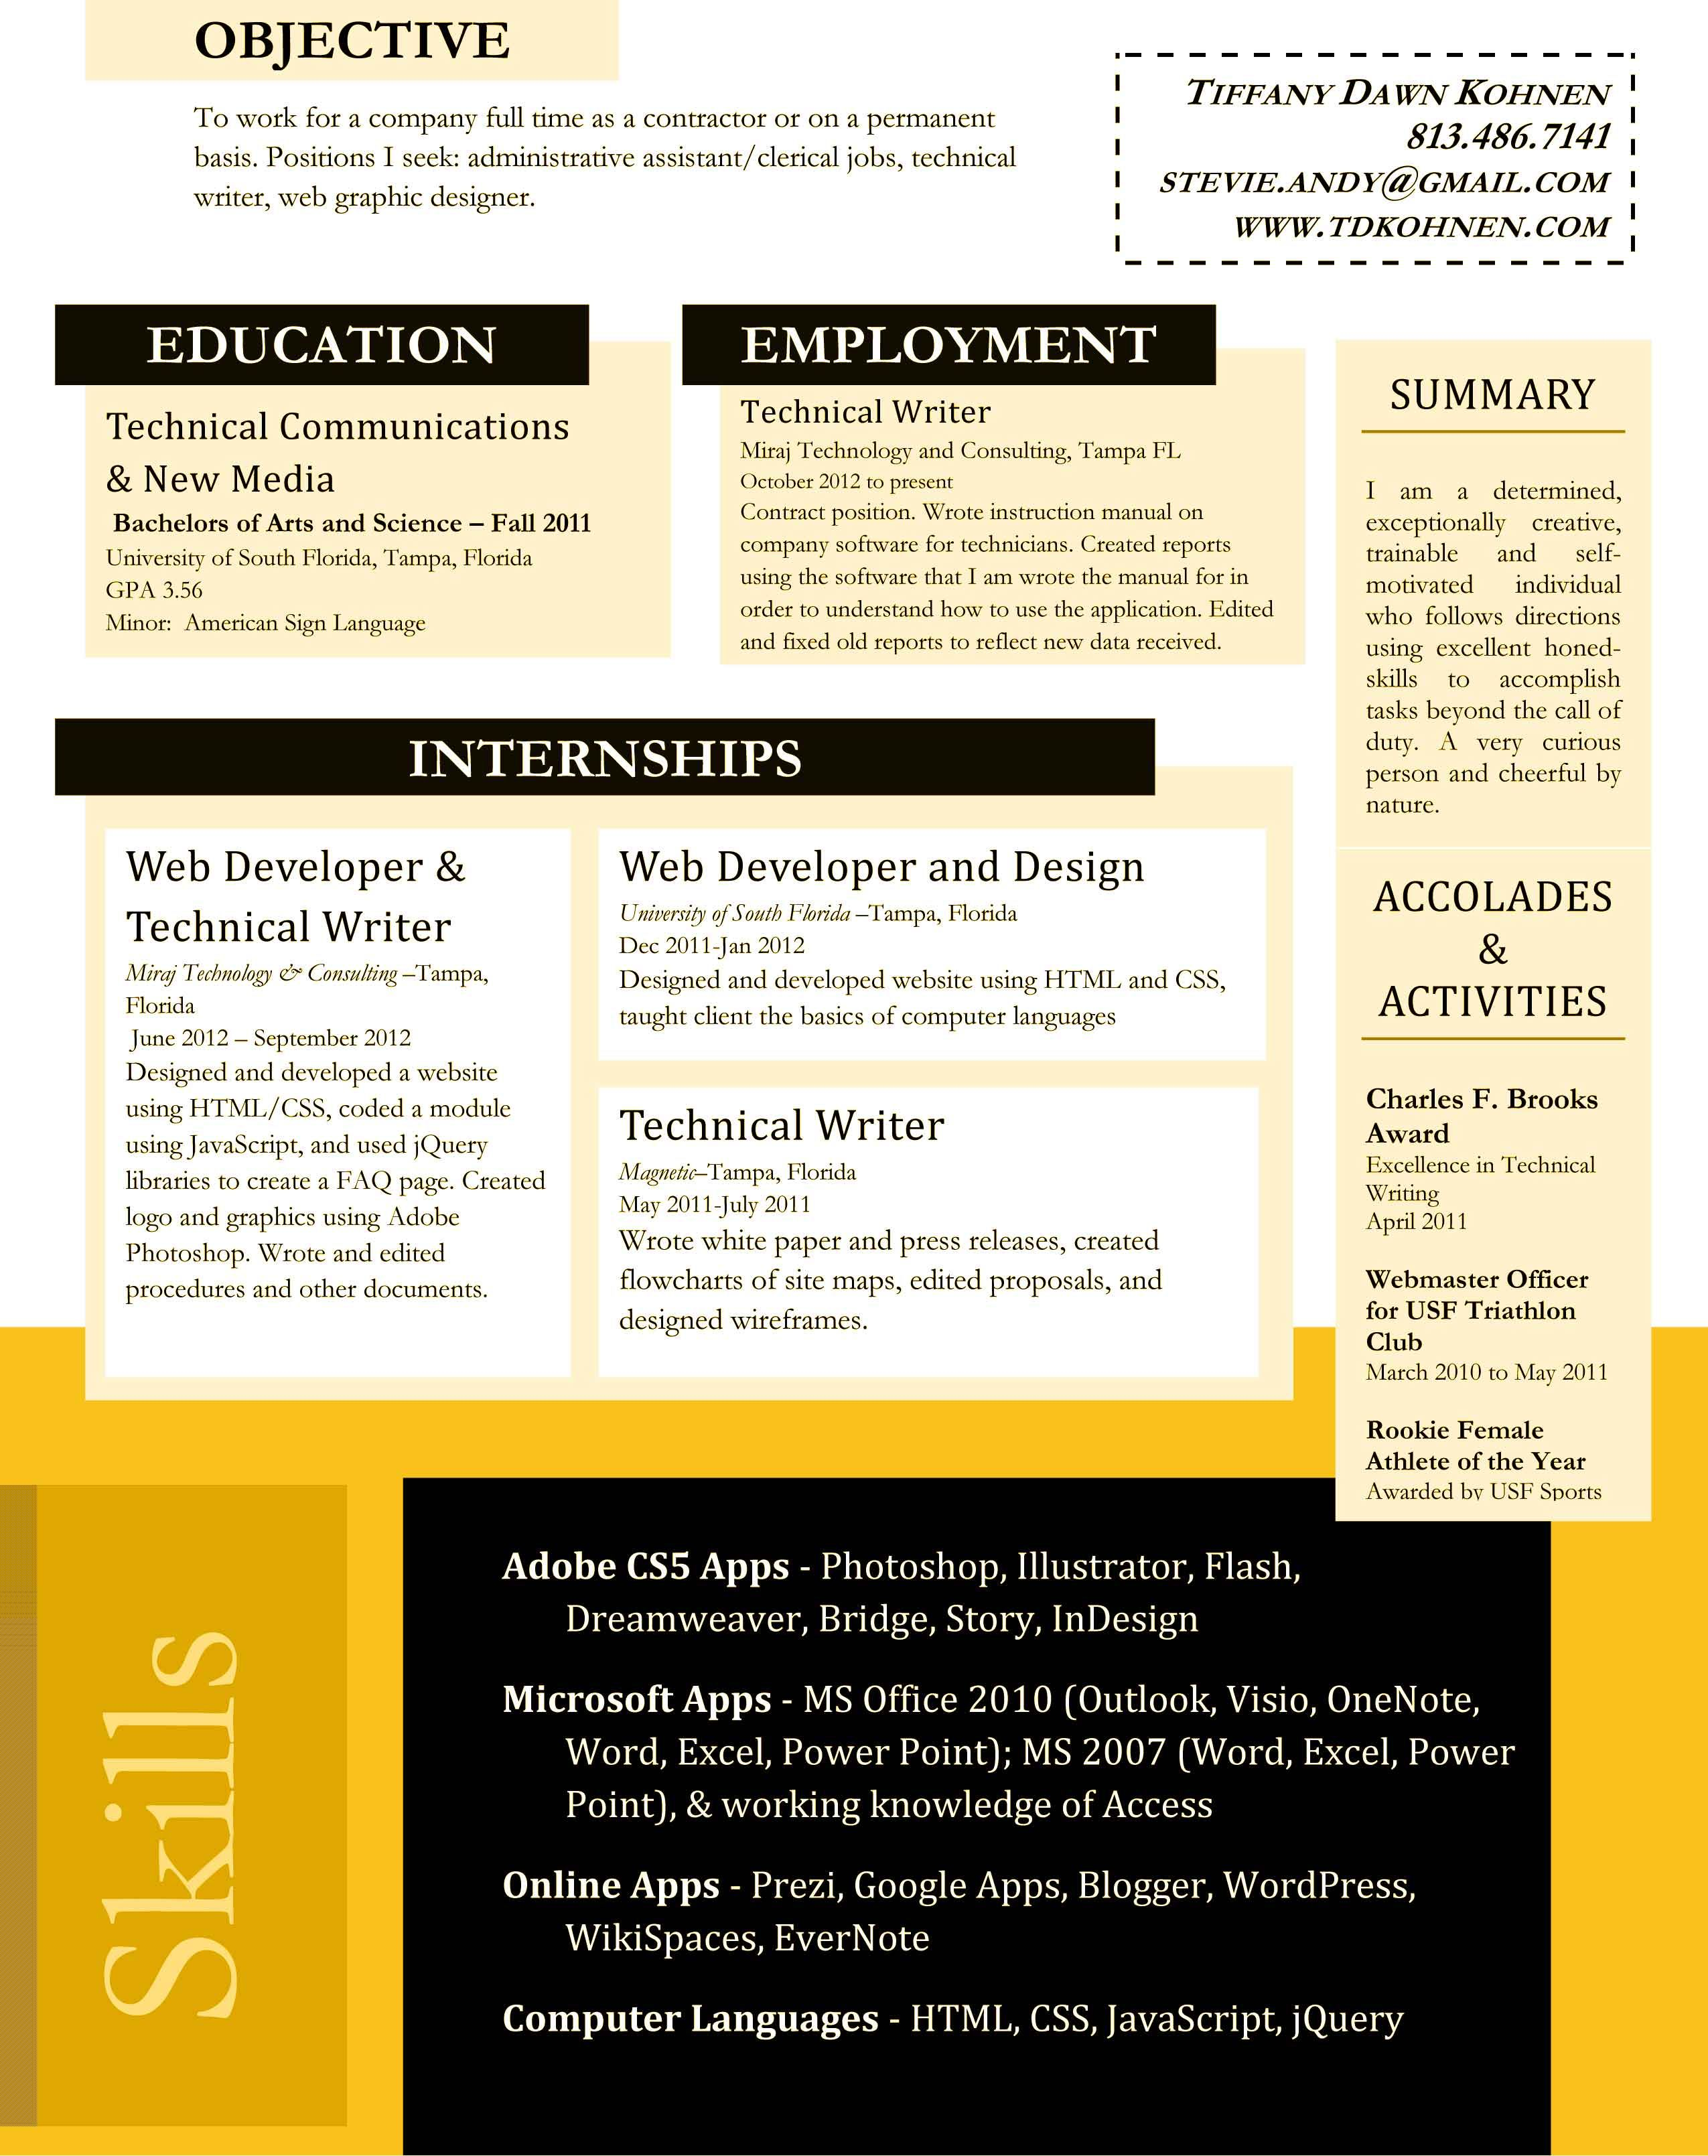 best font for canadian resume resume format examples best font for canadian resume the 5 best fonts to use on your resume the huffington